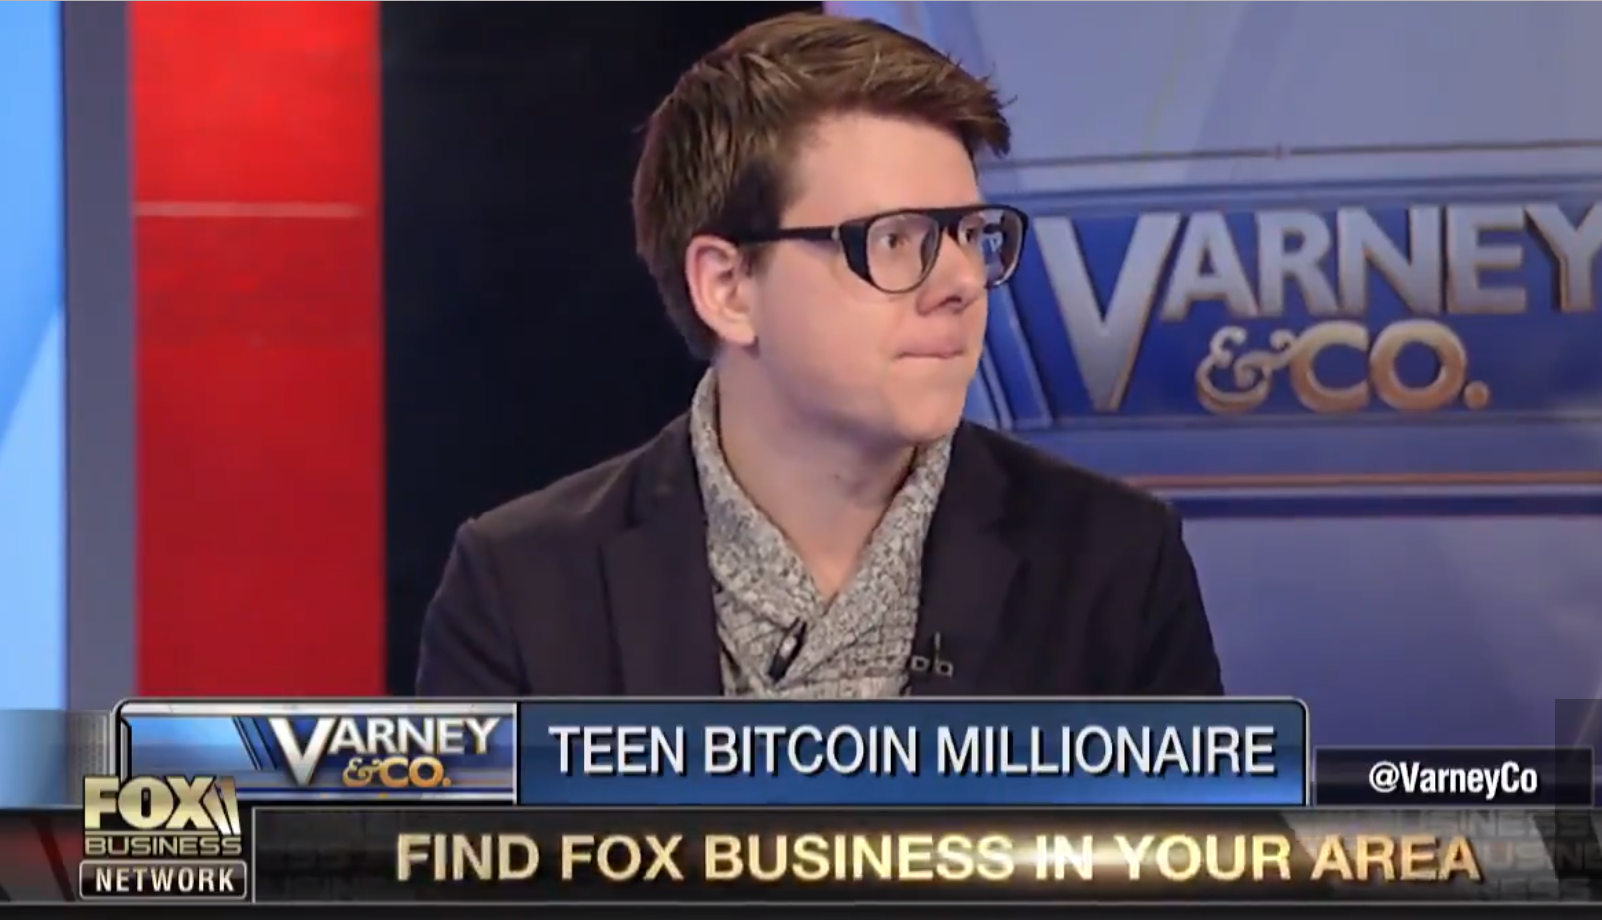 There's No Time Like The Present To Buy Bitcoin Says Teenage Bitcoin Millionaire